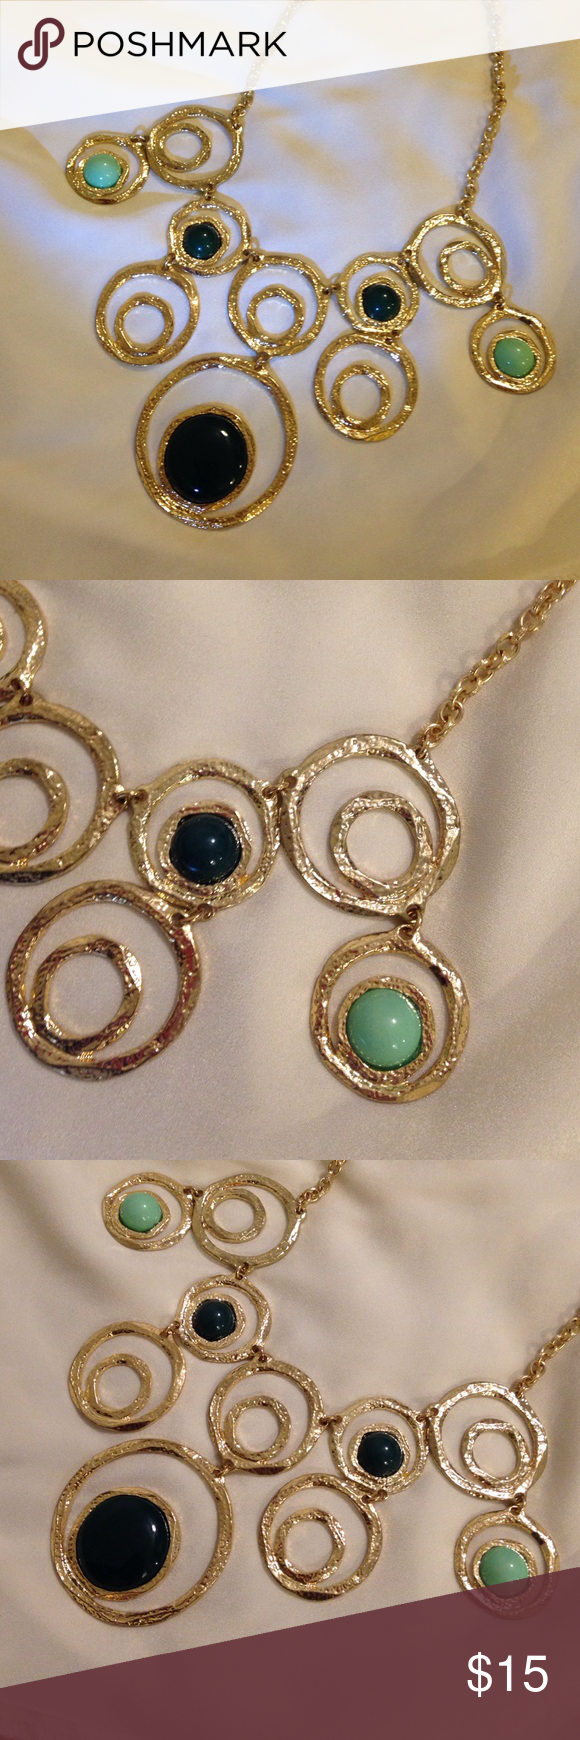 Beautiful necklace Mint and green stones with gold necklace Jewelry Necklaces